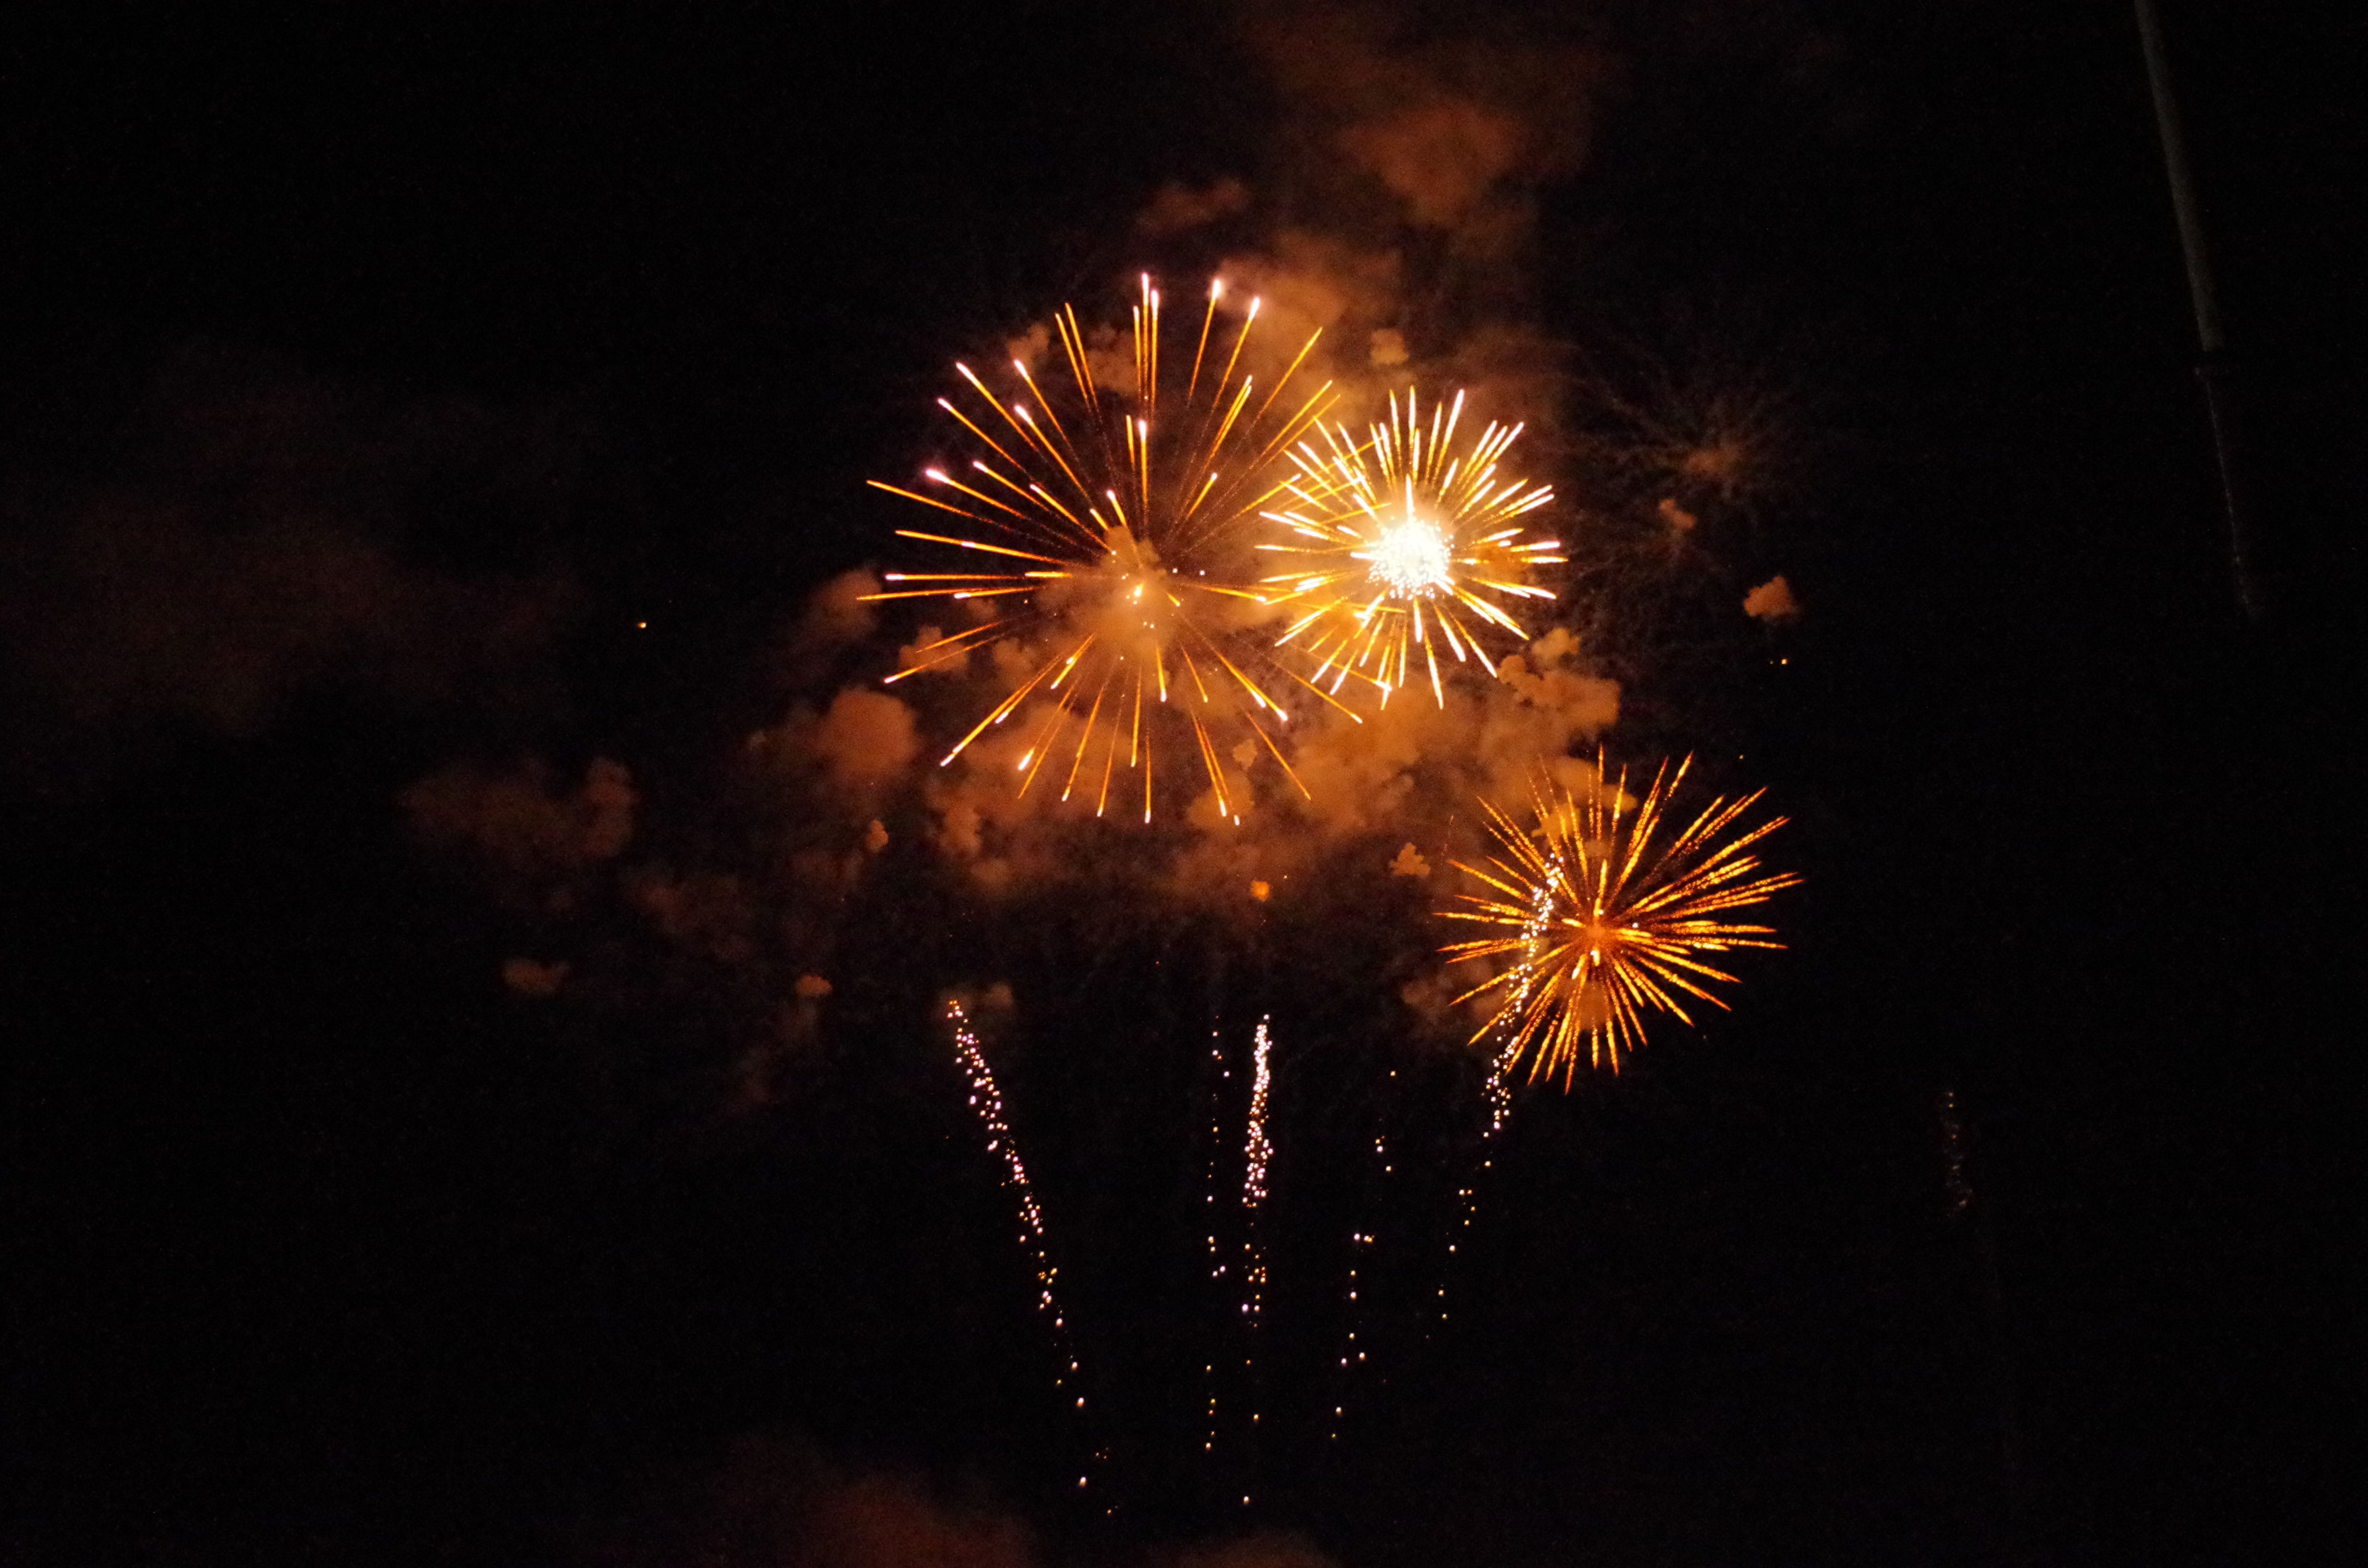 5 fun facts about fireworks